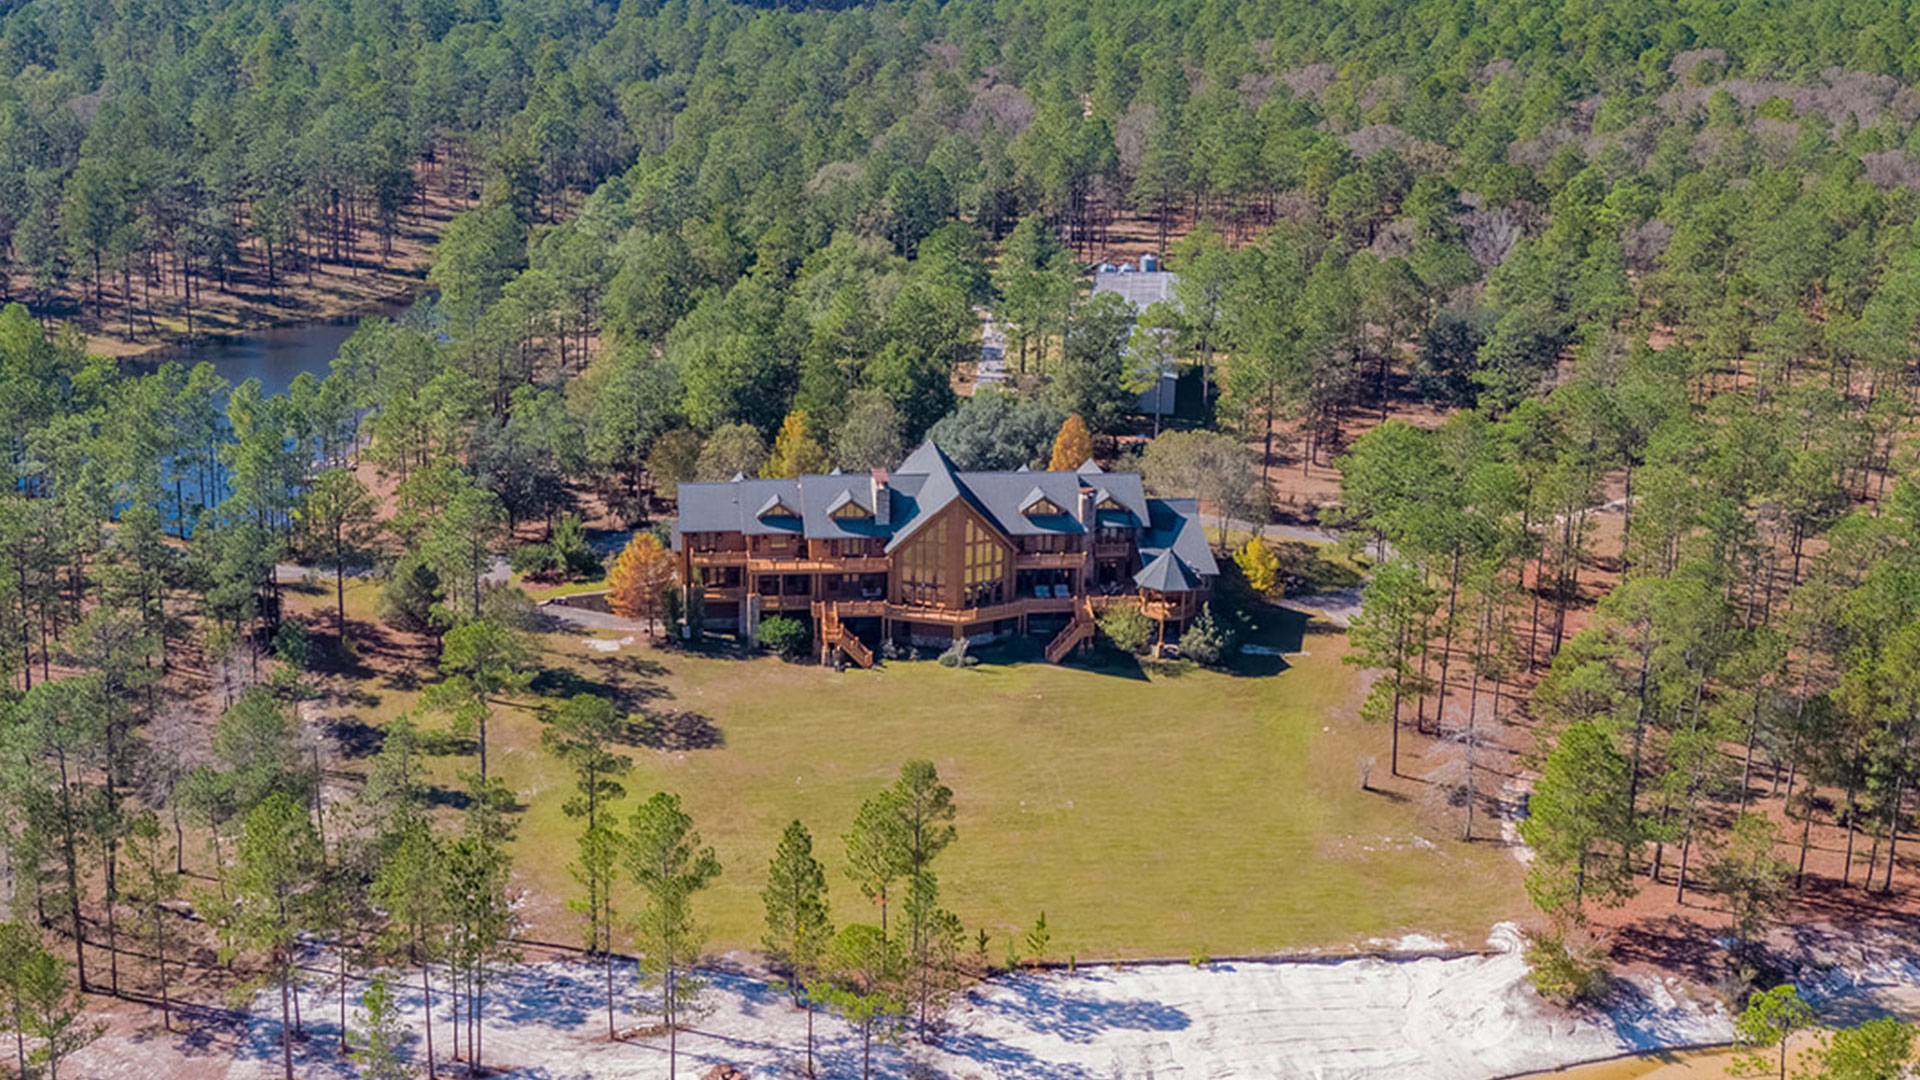 RX_1908_Timber Creek Lodge Florida Aerial